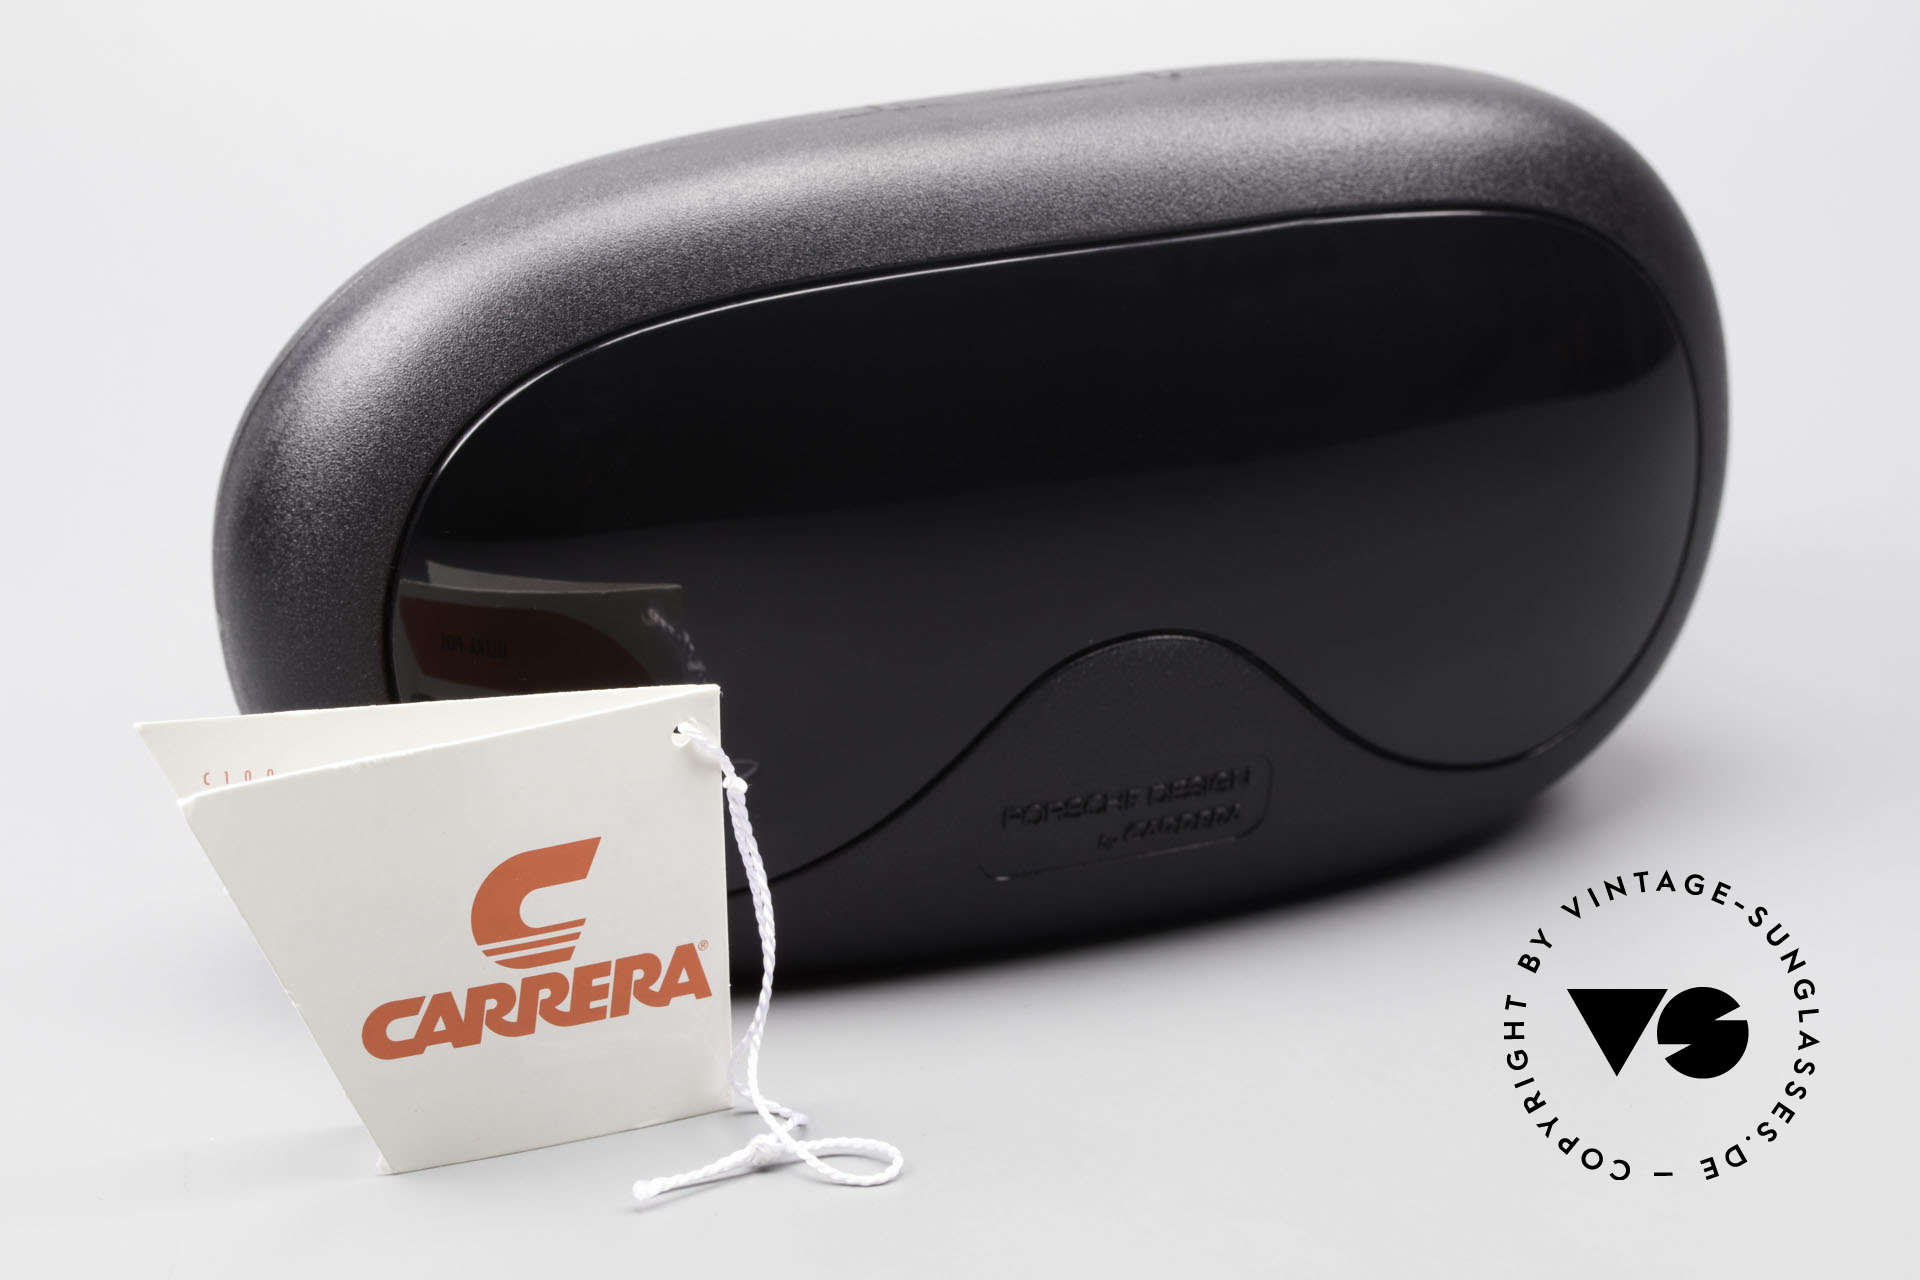 Carrera 5512 Don Johnson Sunglasses 80's, Size: large, Made for Men